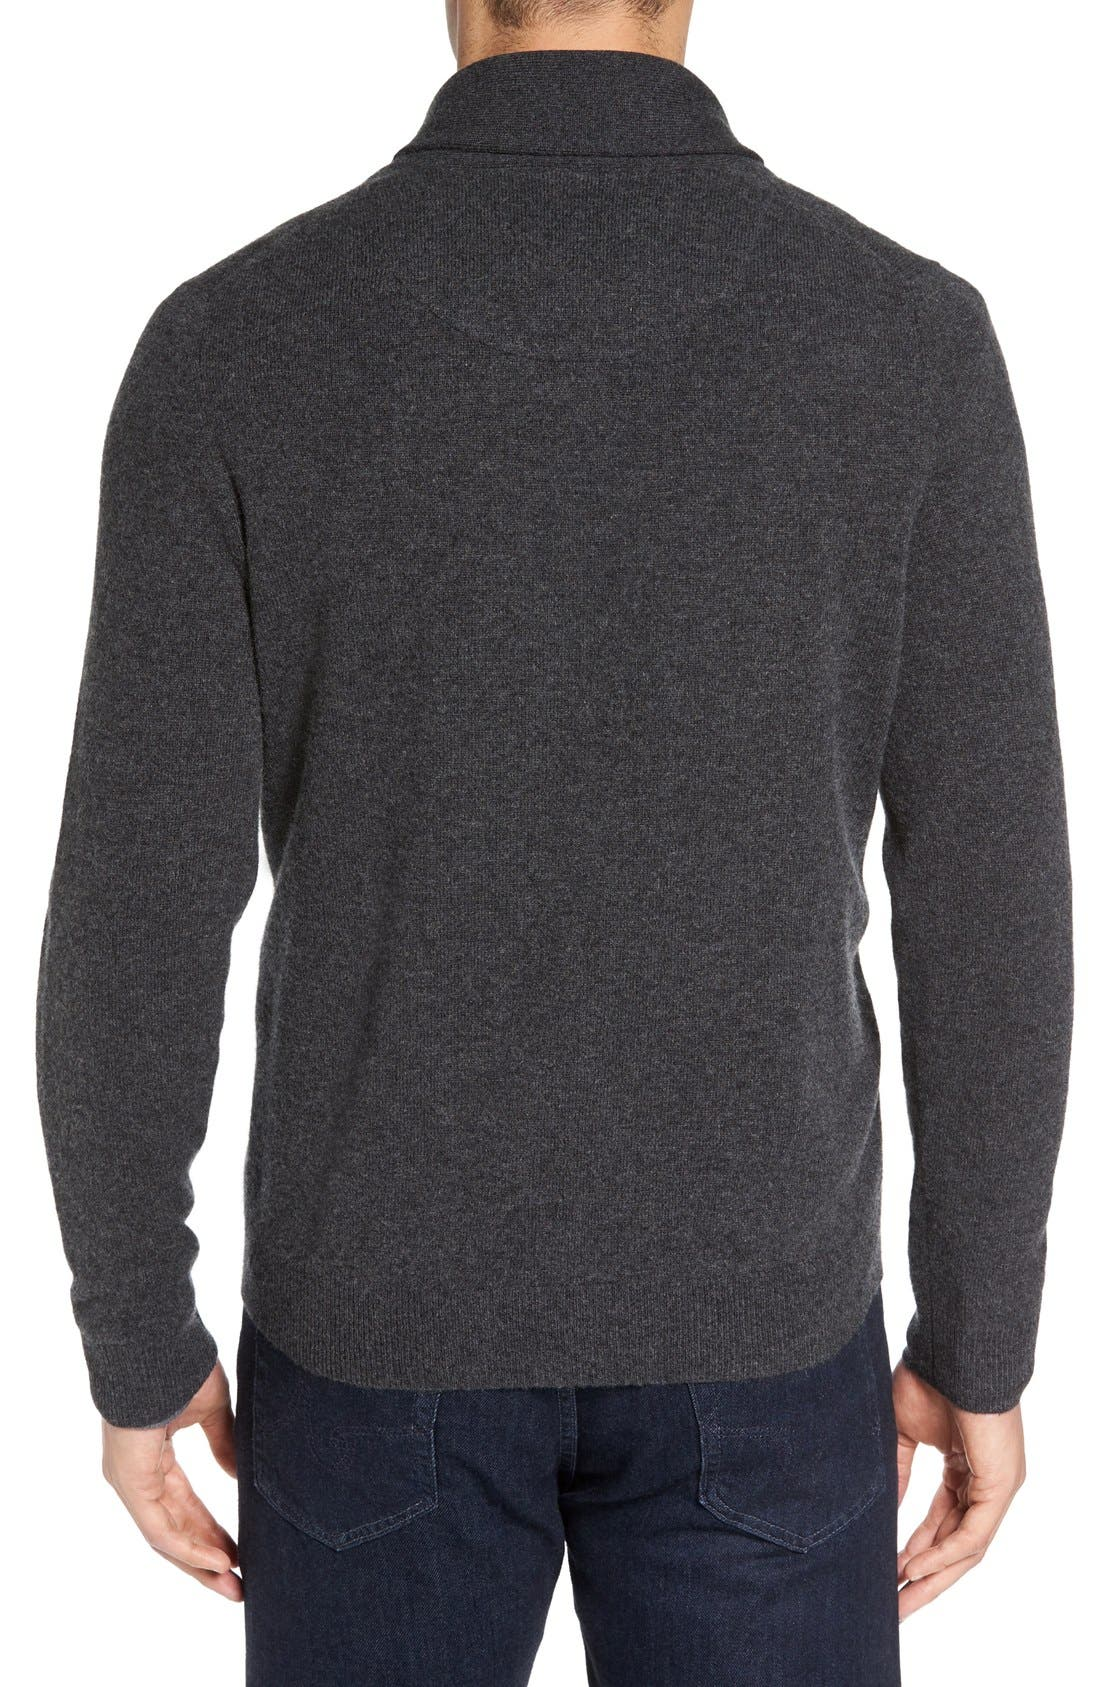 Shawl Collar Cashmere Pullover,                             Alternate thumbnail 2, color,                             GREY DARK CHARCOAL HEATHER